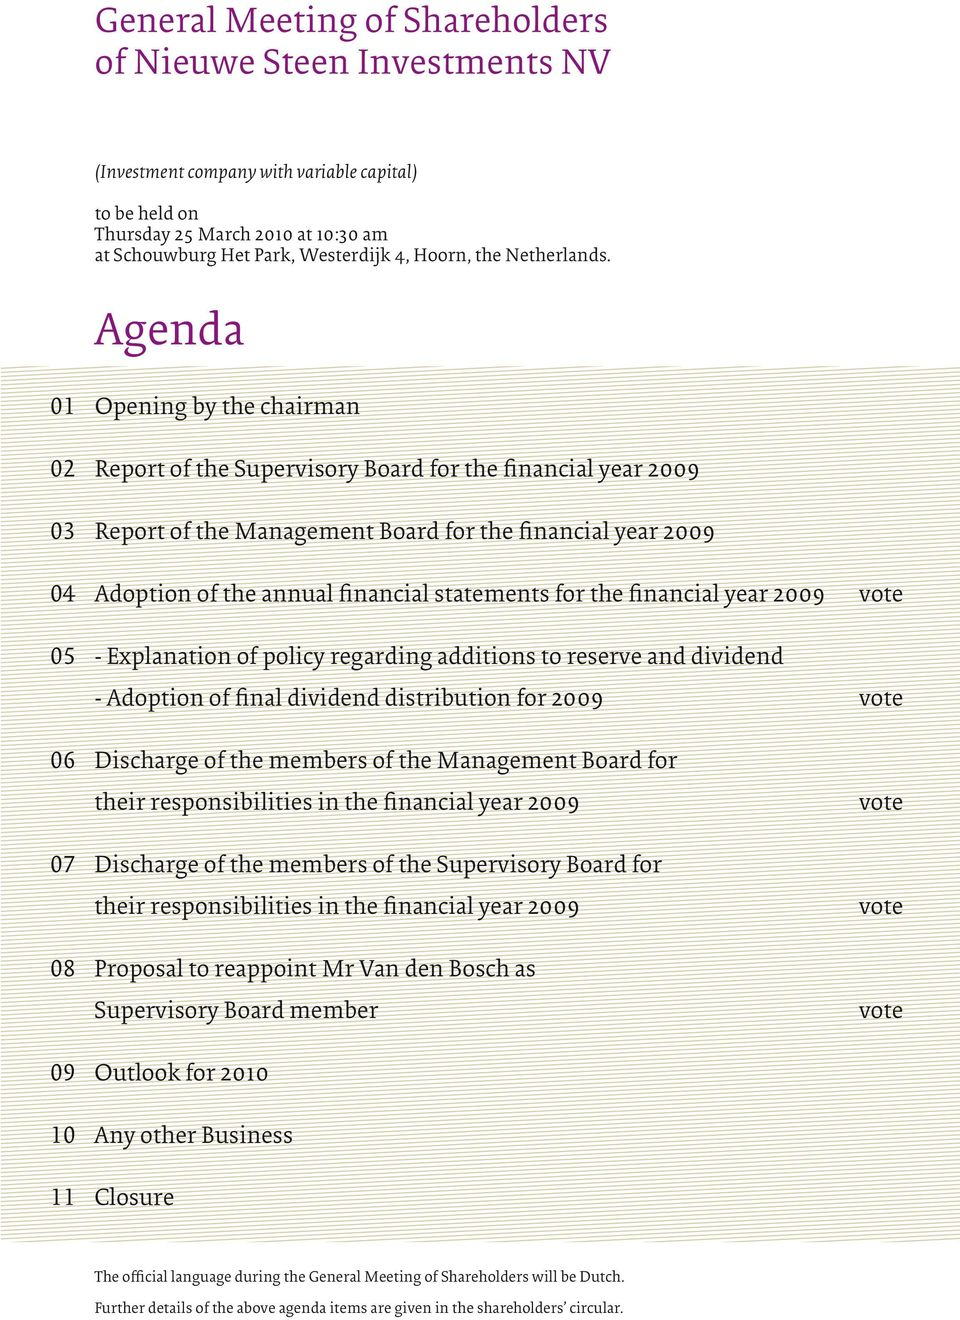 Agenda 01 Opening by the chairman 02 Report of the Supervisory Board for the financial year 2009 Report of the Management Board for the financial year 2009 04 Adoption of the annual financial